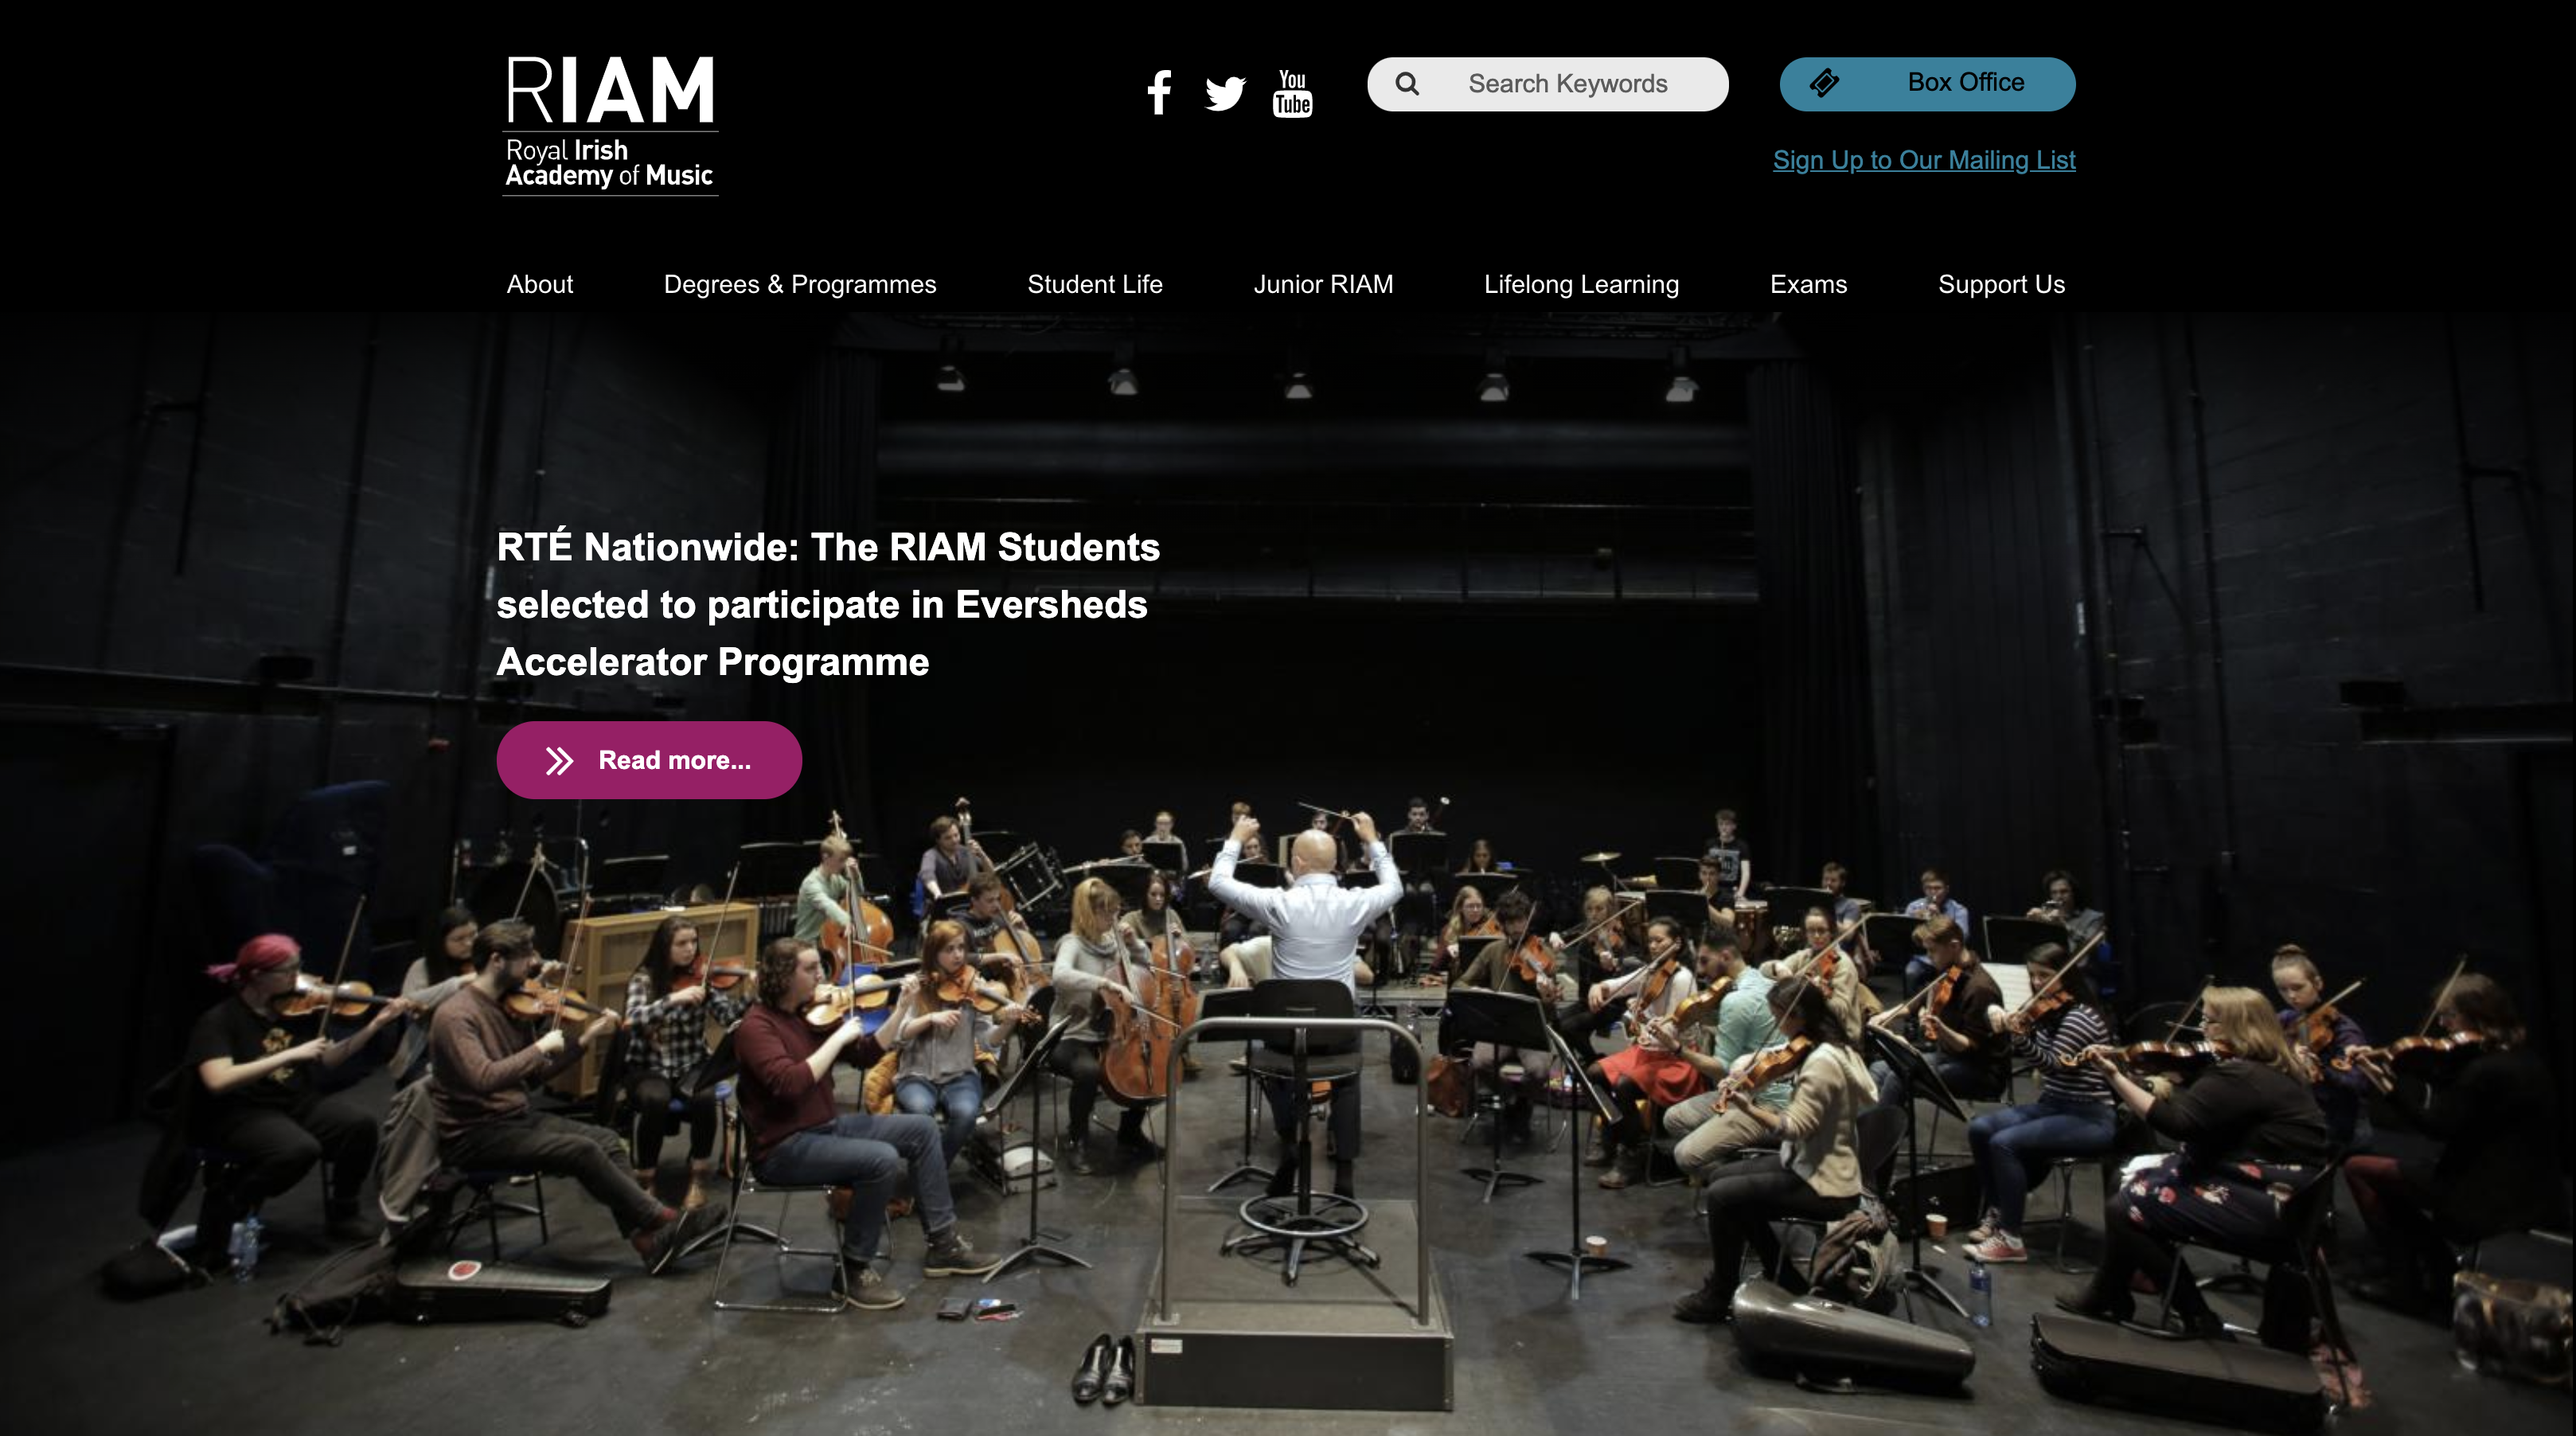 RIAM website